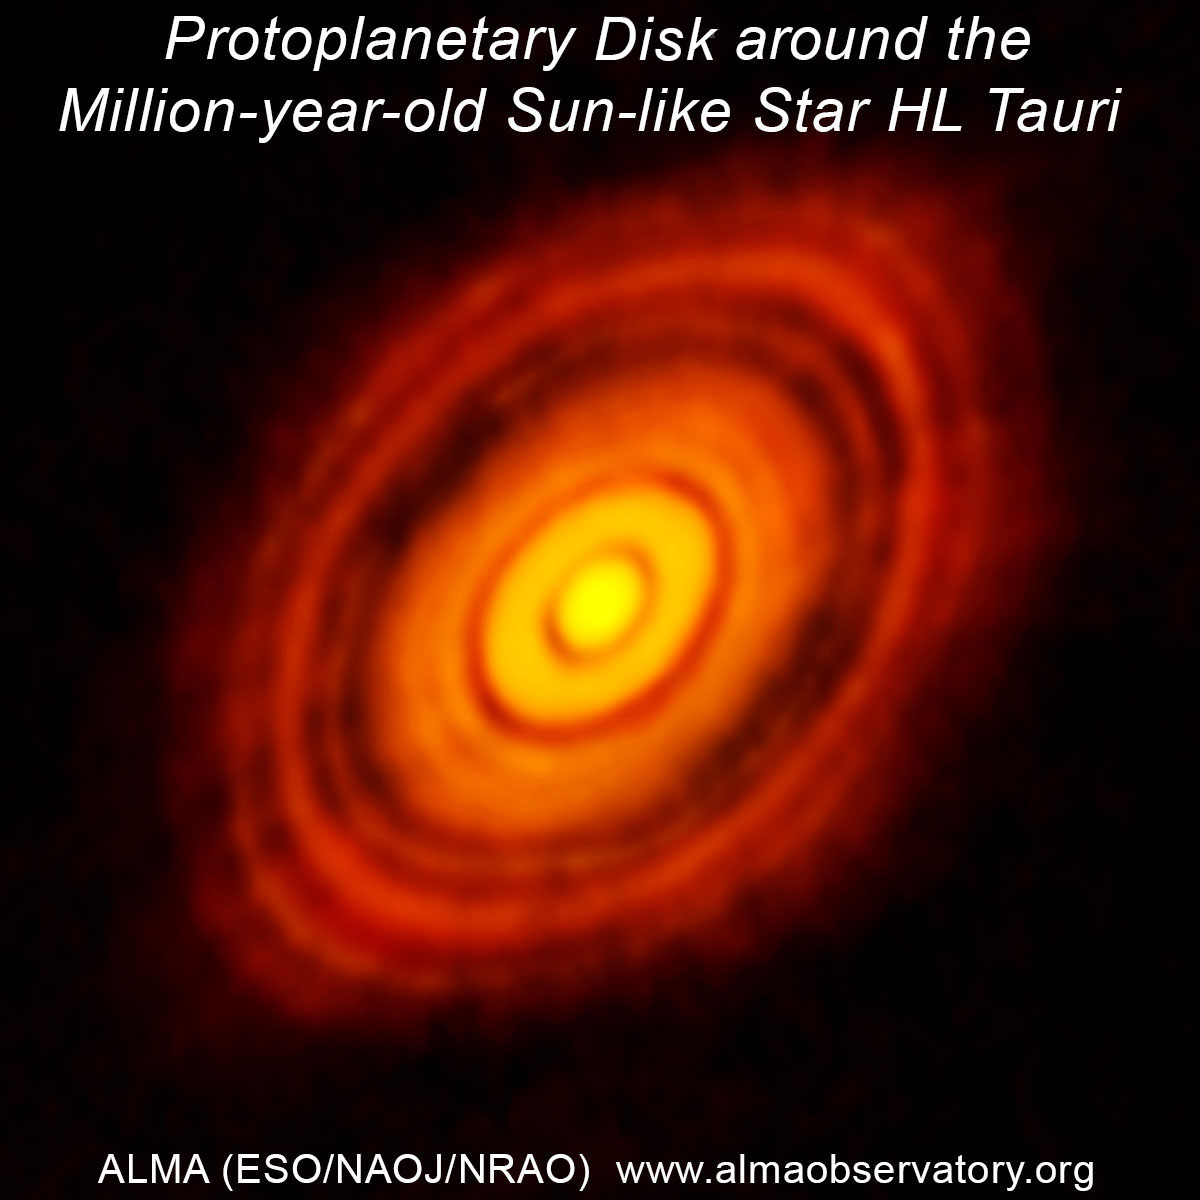 ALMA image of the protoplanetary disk surrounding the star HL Tauri. The image was constructued by combining the radio waves collected by multiple antennas in the Atacama Large Millimeter/submillimeter Array. Credit: ALMA (ESO/NAOJ/NRAO)